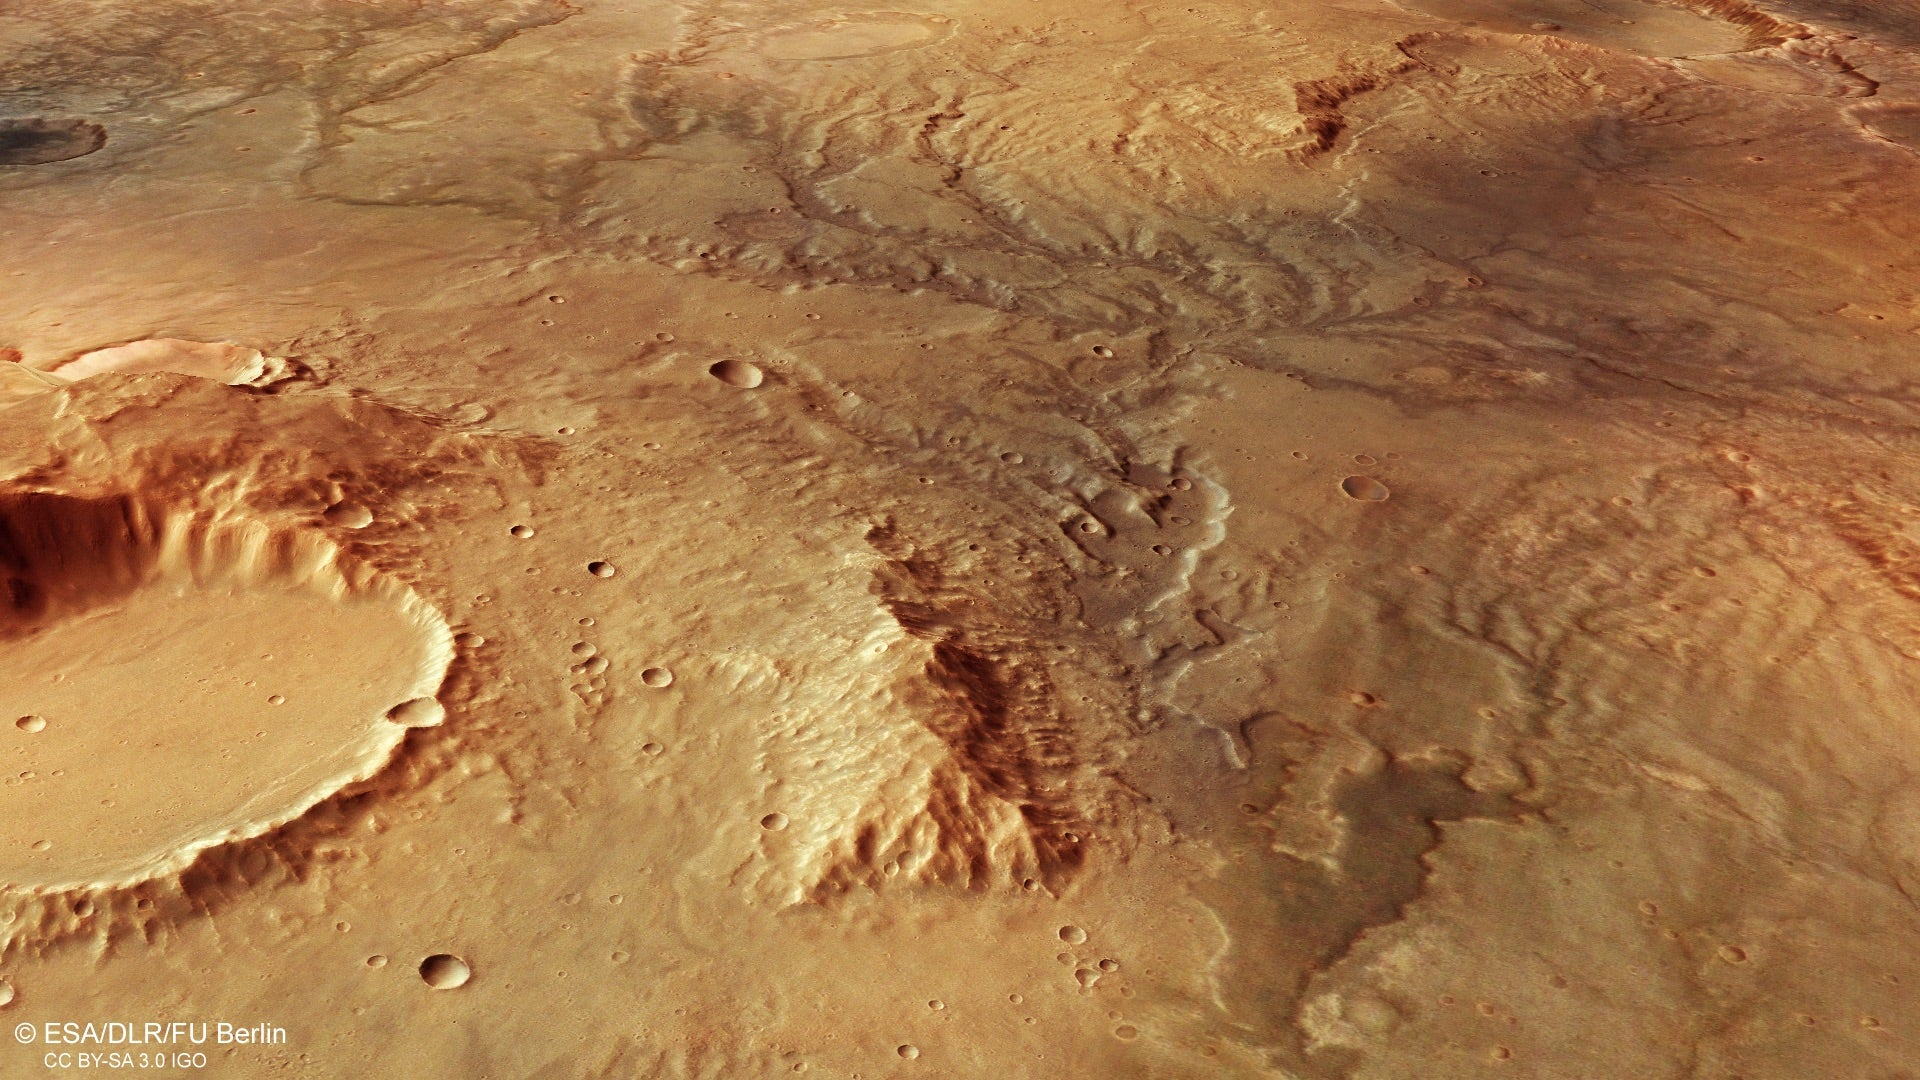 Stunning New View Of Mars Shows Where Ancient Flowing Water Once Carved Its Surface